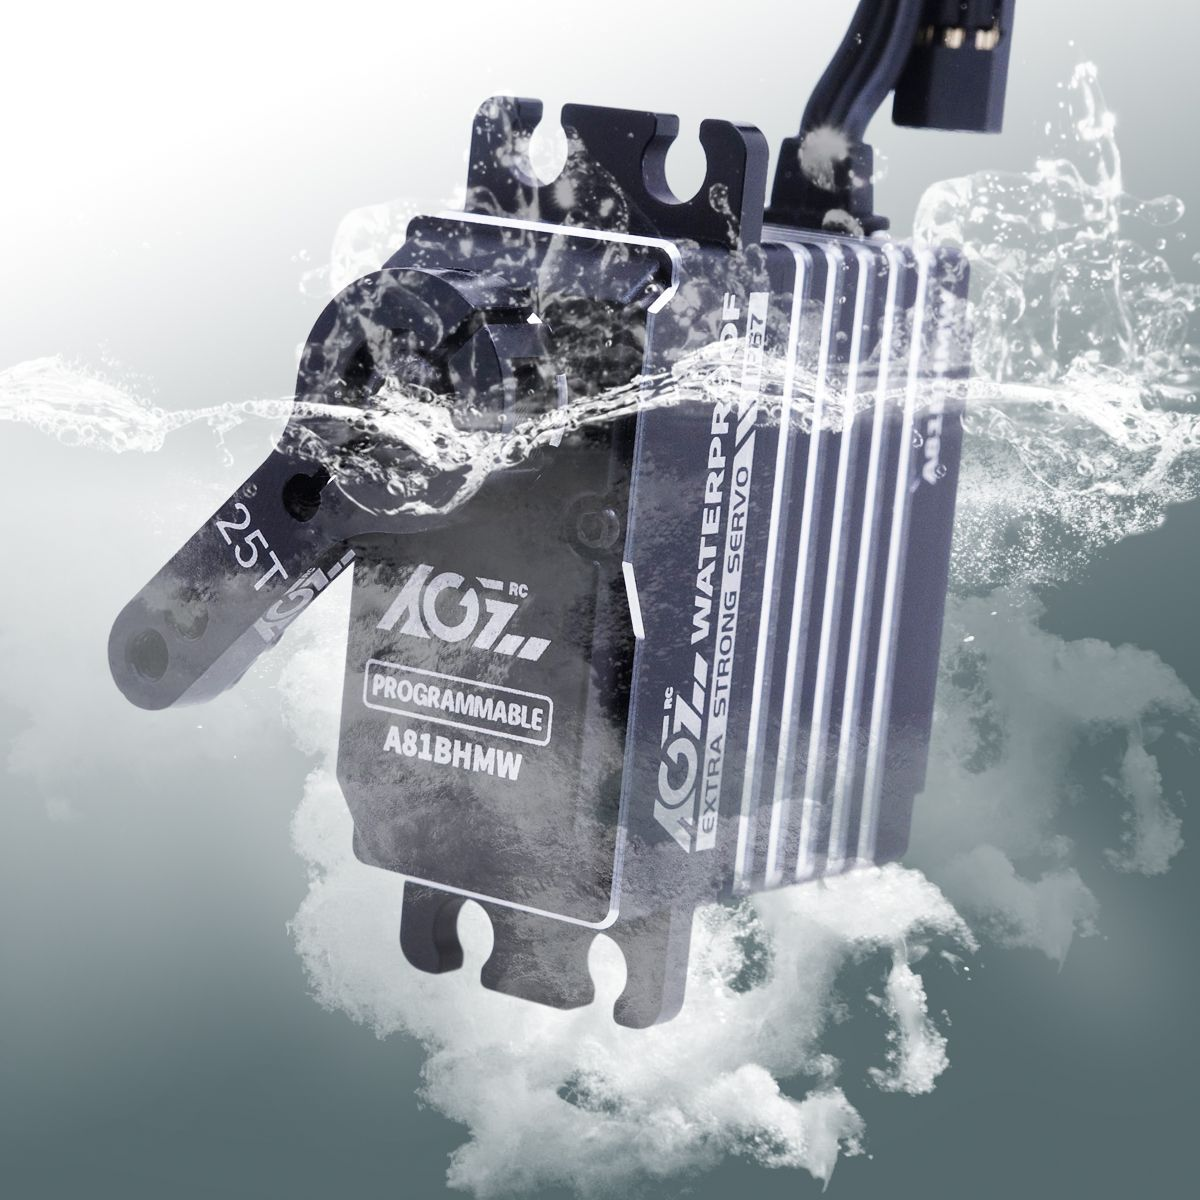 AGFRC A81BHMW HV 45KG Super Torque Waterproof Programmable Digital Waterproof Standard Servo